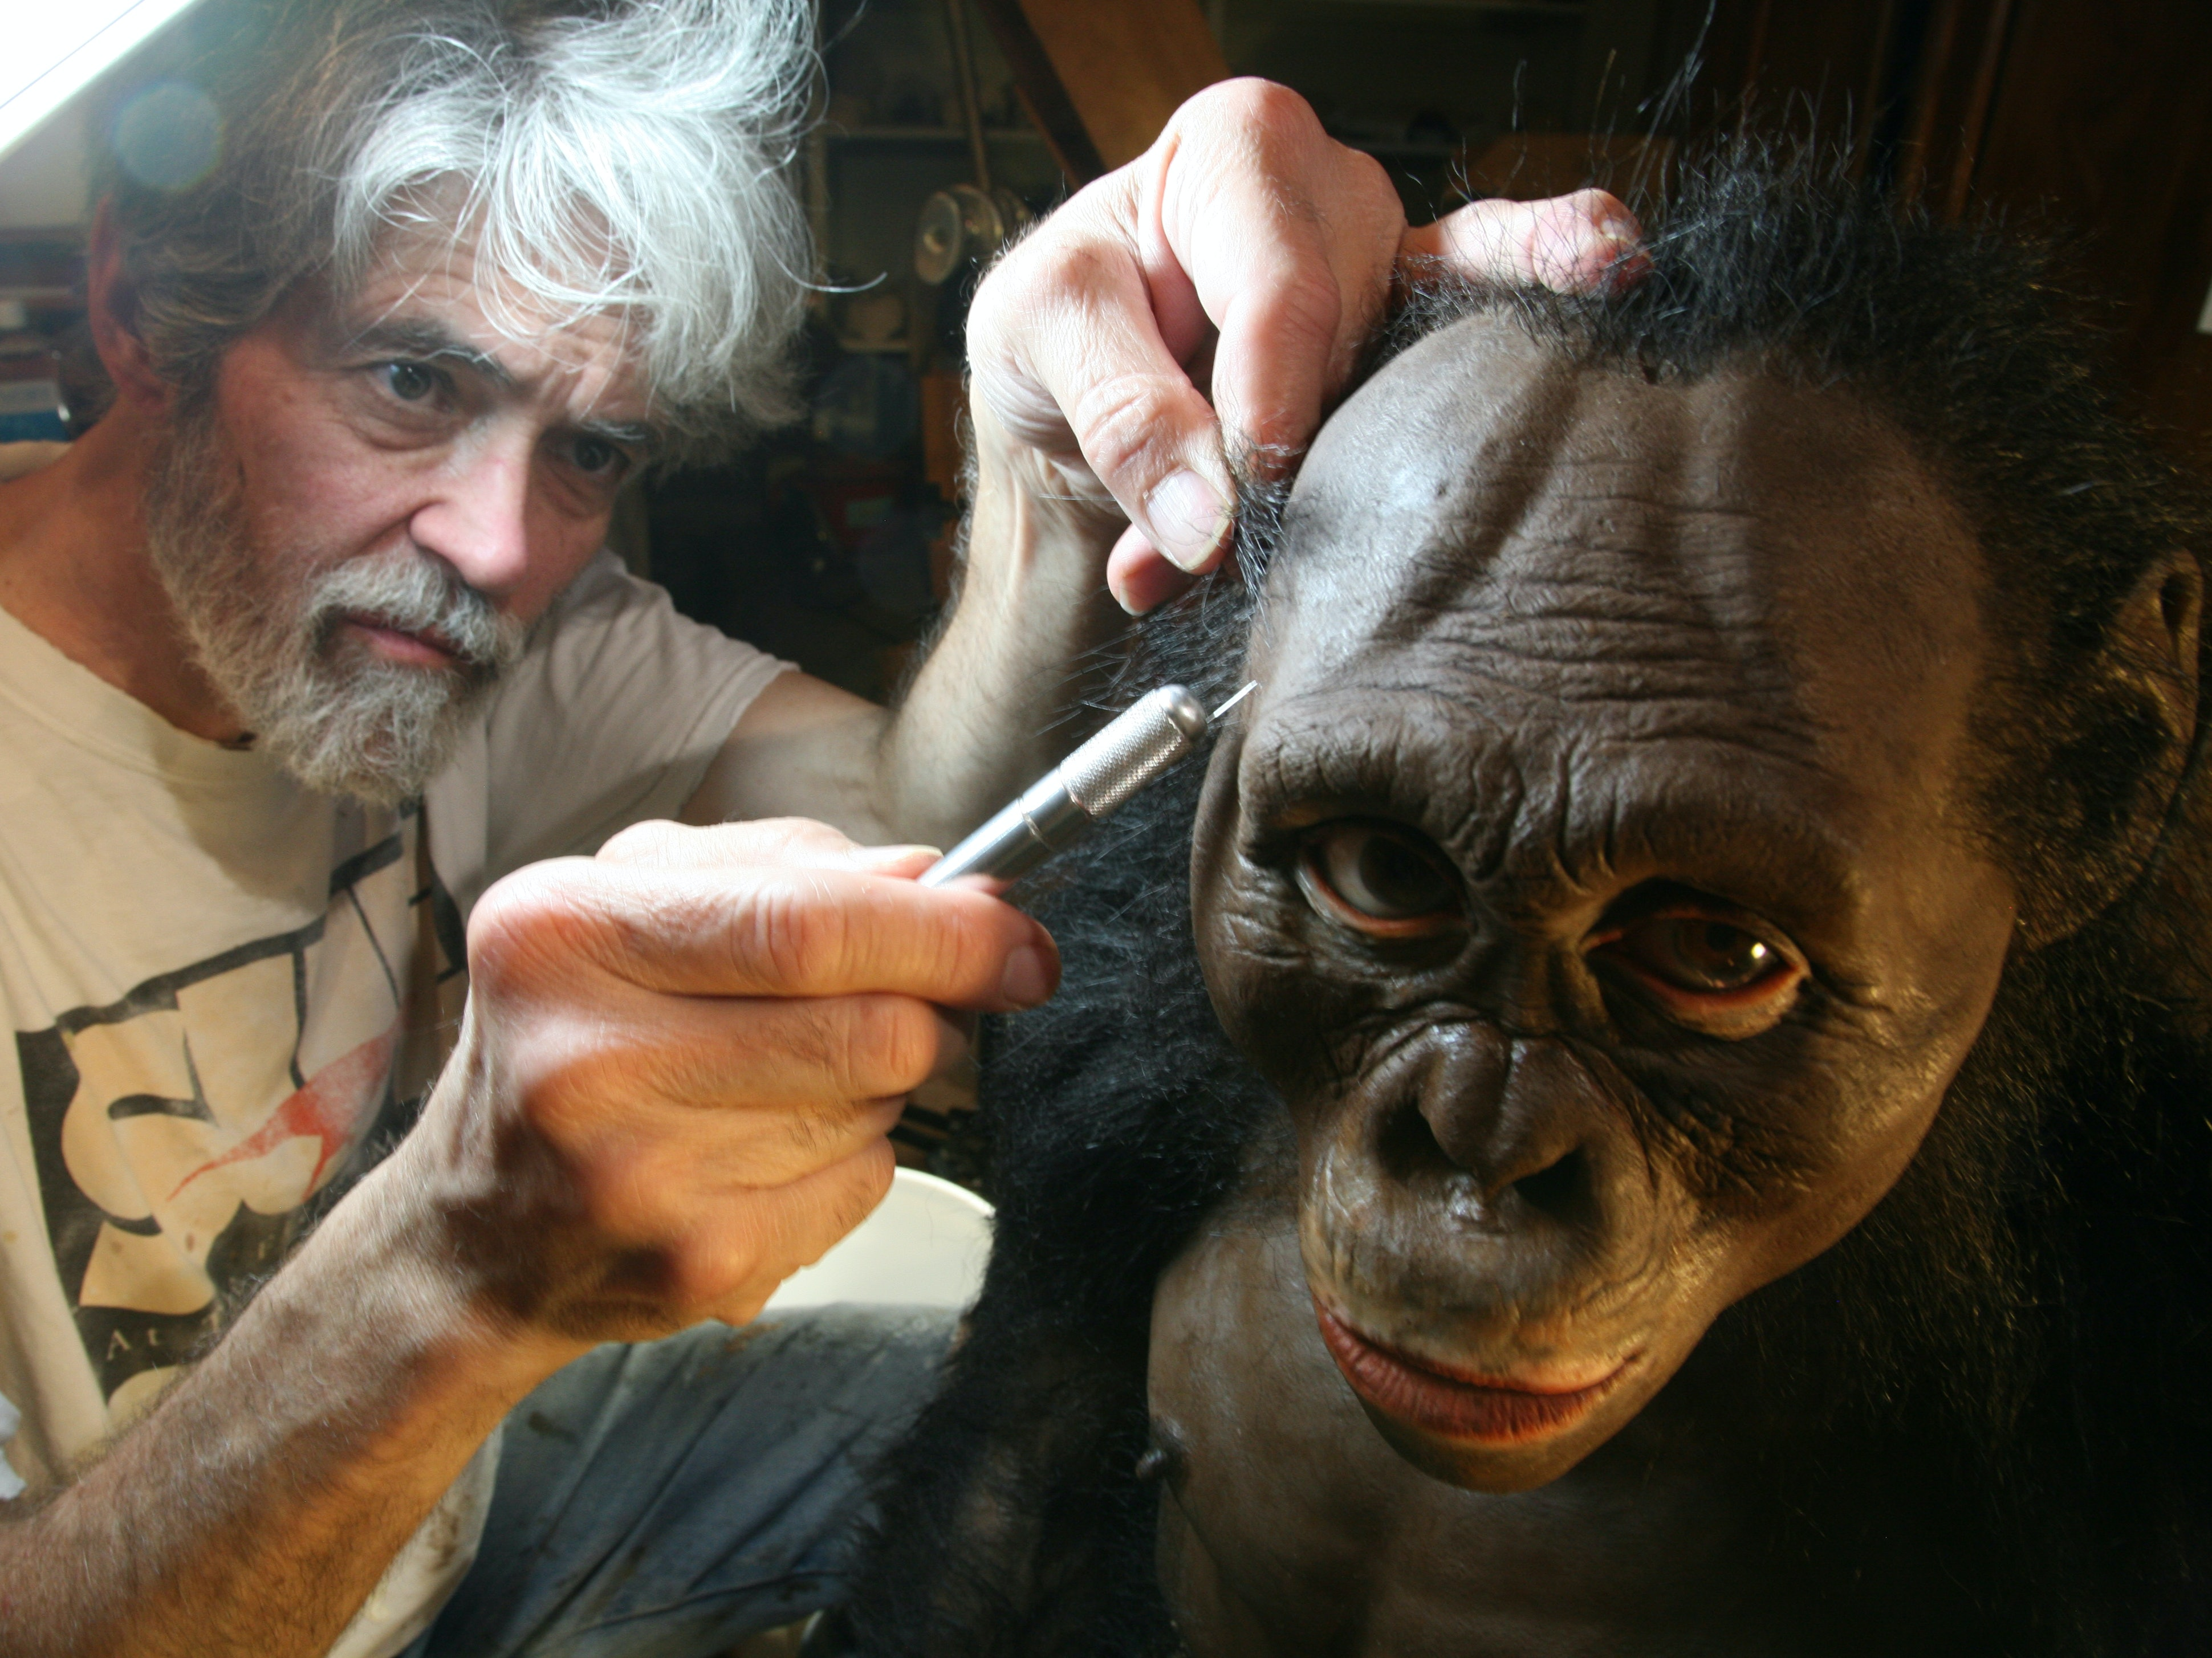 This Artist Brought Homo Naledi, Our Newly Found Human Ancestor, to Life